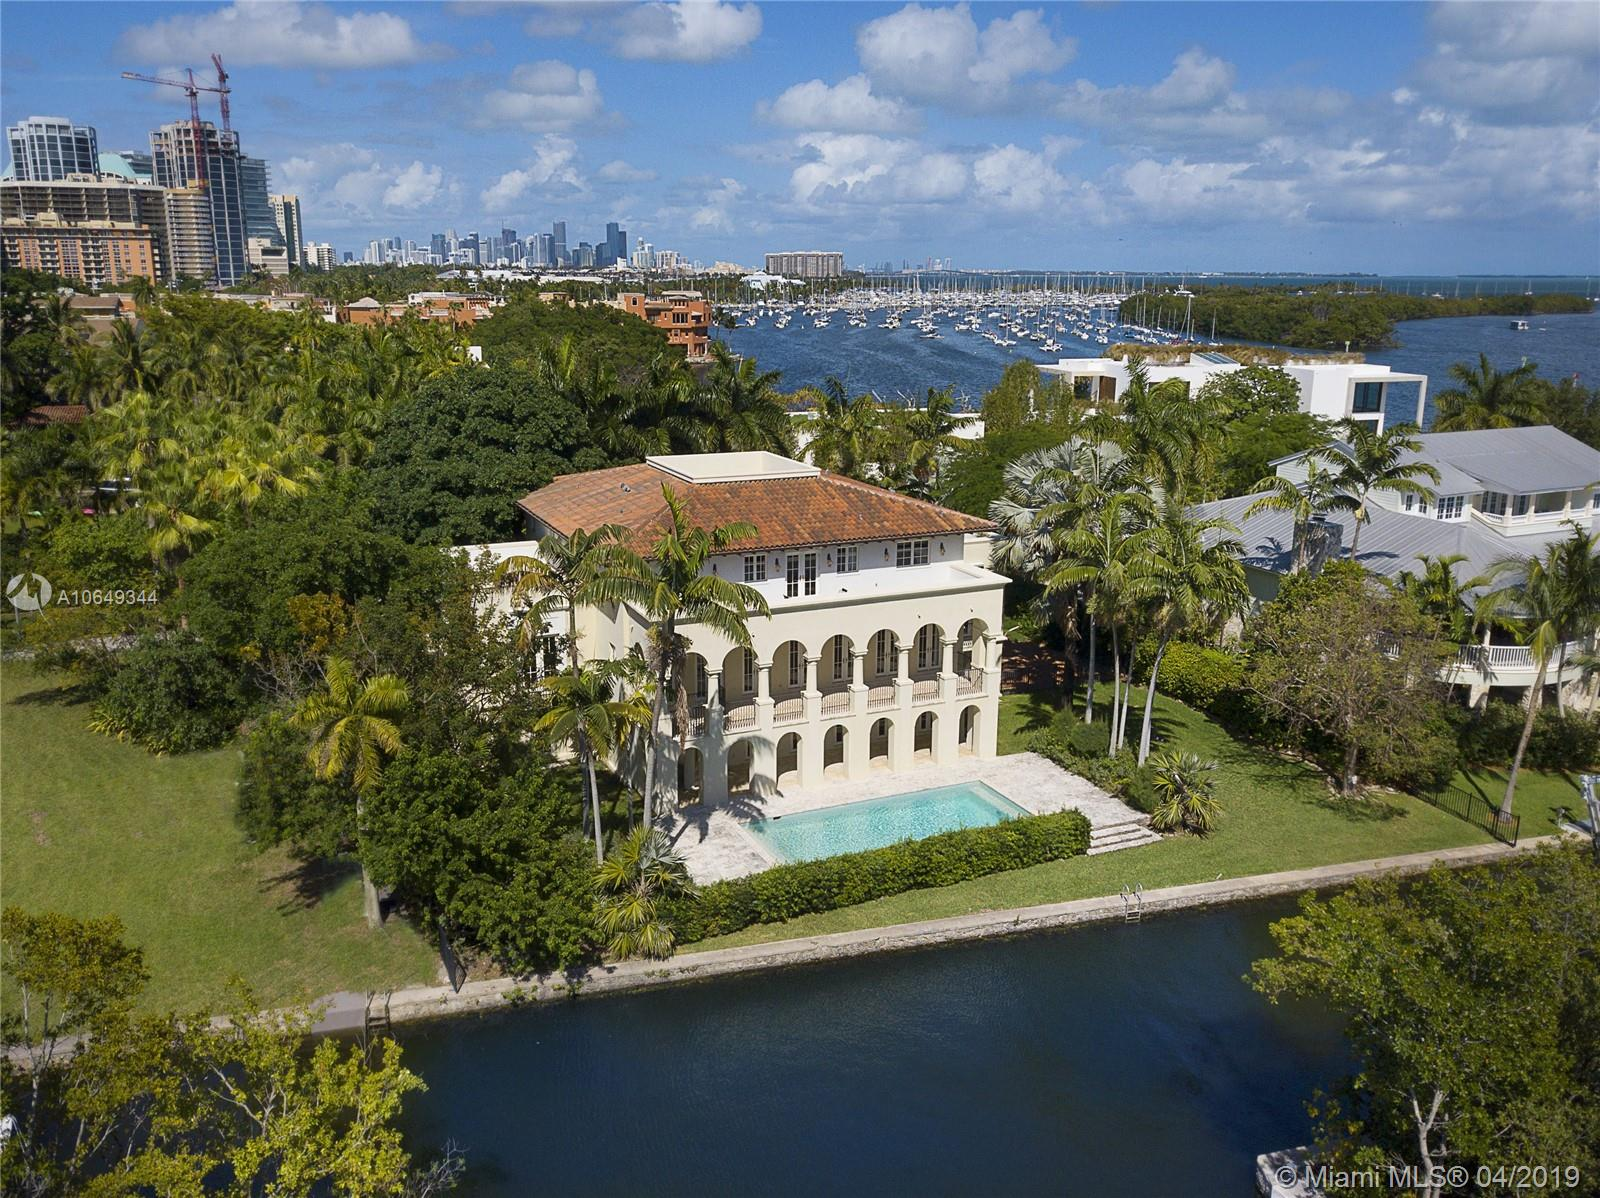 Ideally situated in the heart of the Grove behind gates of exclusive Camp Biscayne, this 2003 built home boasts 122' of water frontage & breathtaking views of the Bay, canal & natural landscape.  The elegant style offers sophistication w/ details like mahogany trimmed impact glass drs & wndws, Brazilian wd & Jerusalem marble flrs, arches & vaulted ceilings. Formal spaces incl gracious dining rm & huge liv rm that flows out to a balcony spanning the back of the home. Cook's kitchen offers gas, high end appliances & breakfast rm overlooking the canal. Outside are many covered balconies & open porches, including a roof top terrace & heated, saline pool w/ keystone flrs & views of the boat basin at La Brisa. 1st floor ac'd bonus space w/ full bath, 2 car gar, organic mosquito repellant system.